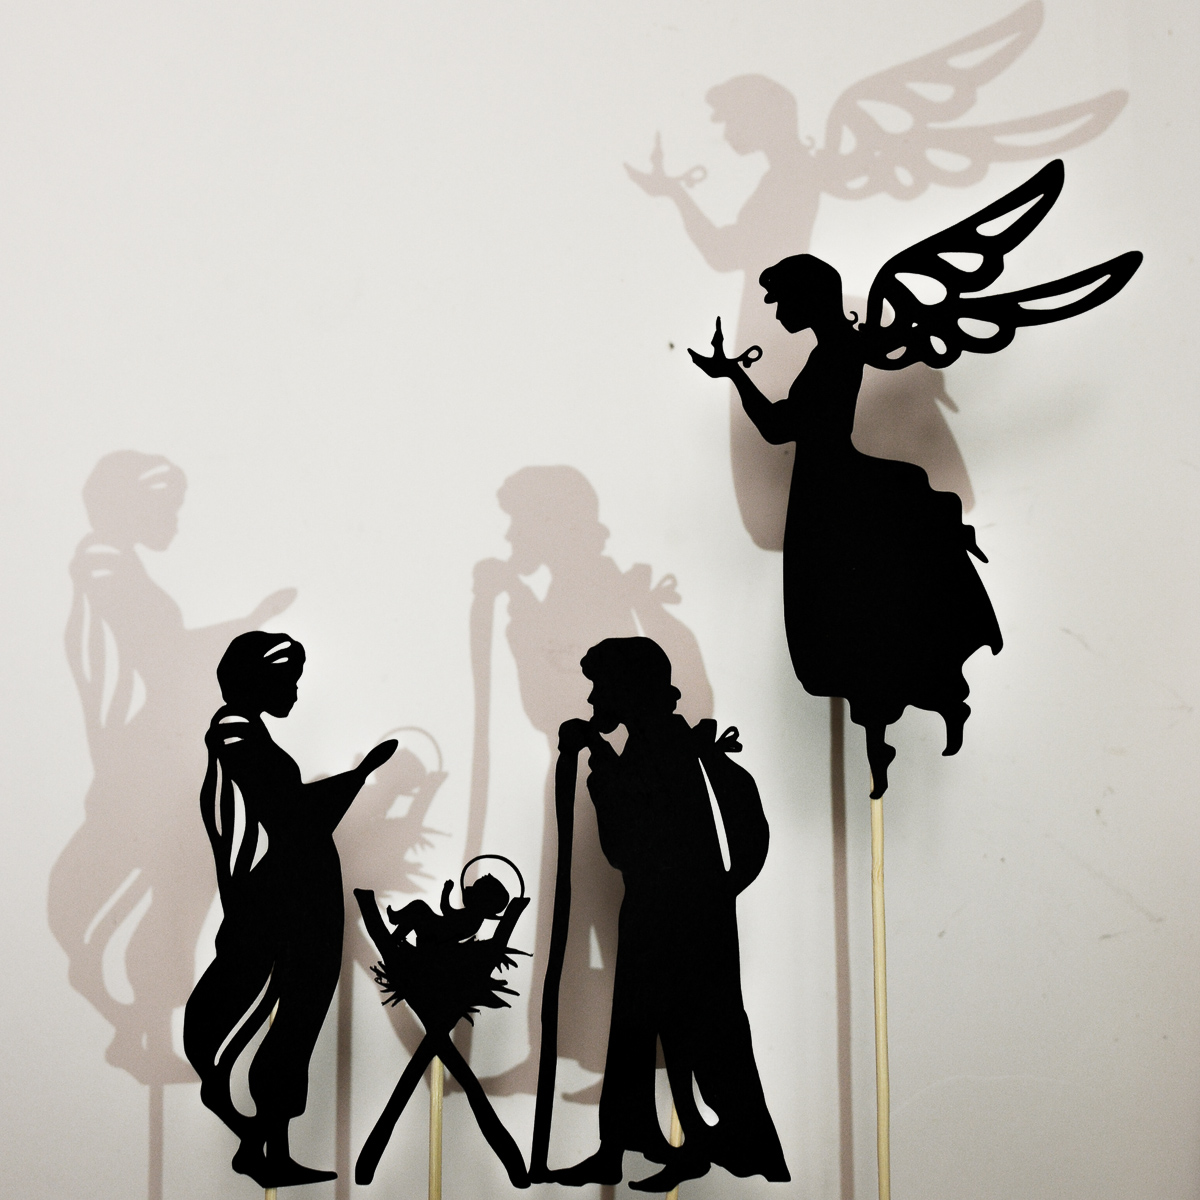 photo about Printable Nativity Scene Patterns called Nativity Silhouette Styles at  Cost-free for